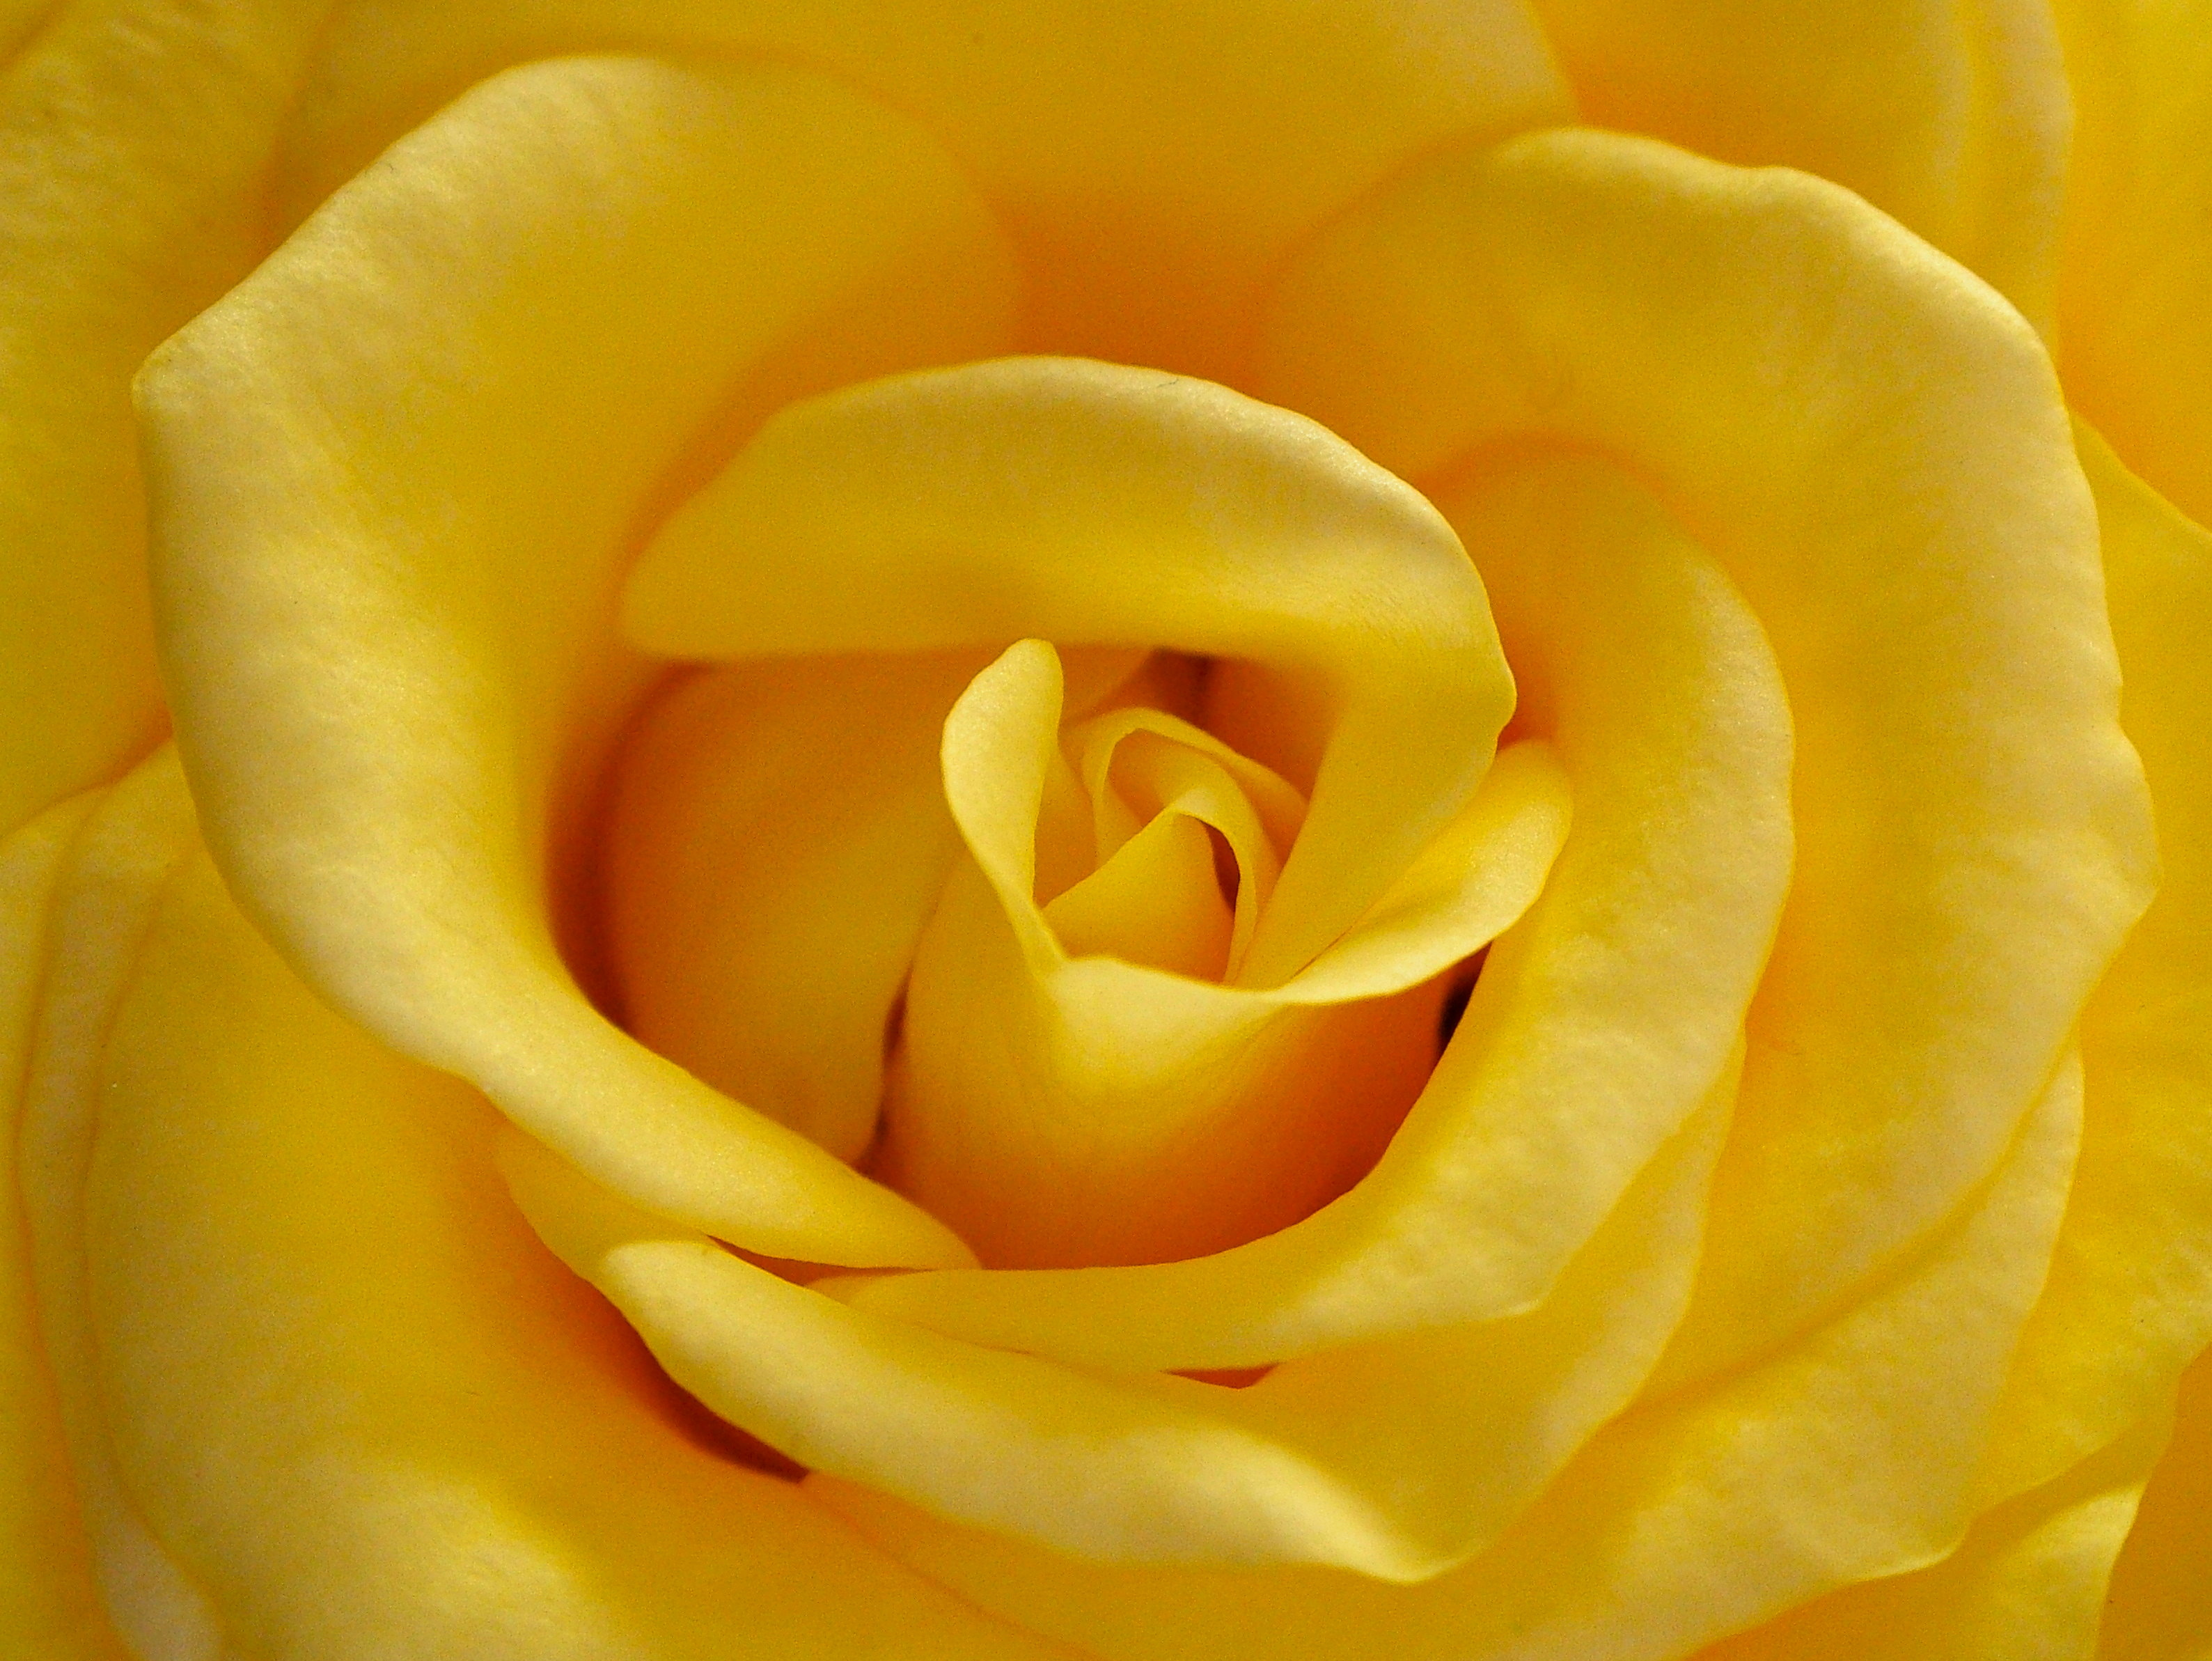 Yellow Rose, Bspo06, Closeup, Flower, Flower photos, HQ Photo